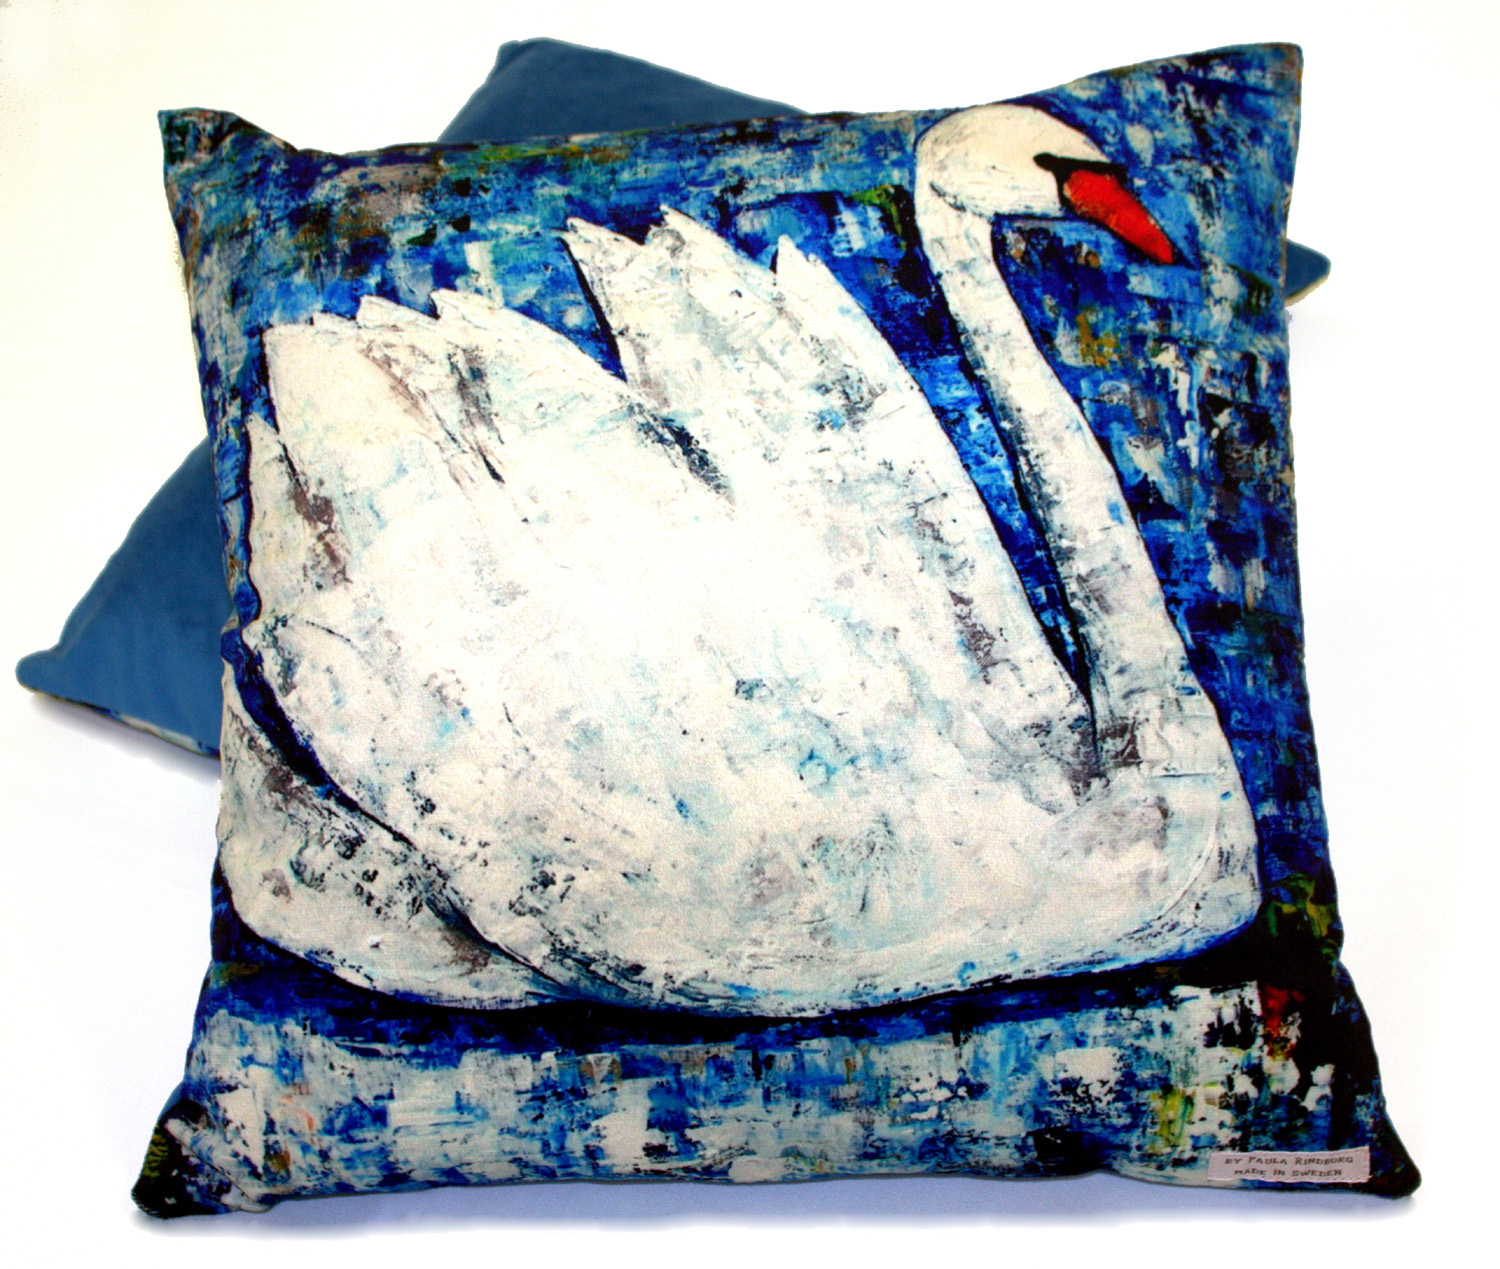 Cushion by Paula Rindborg